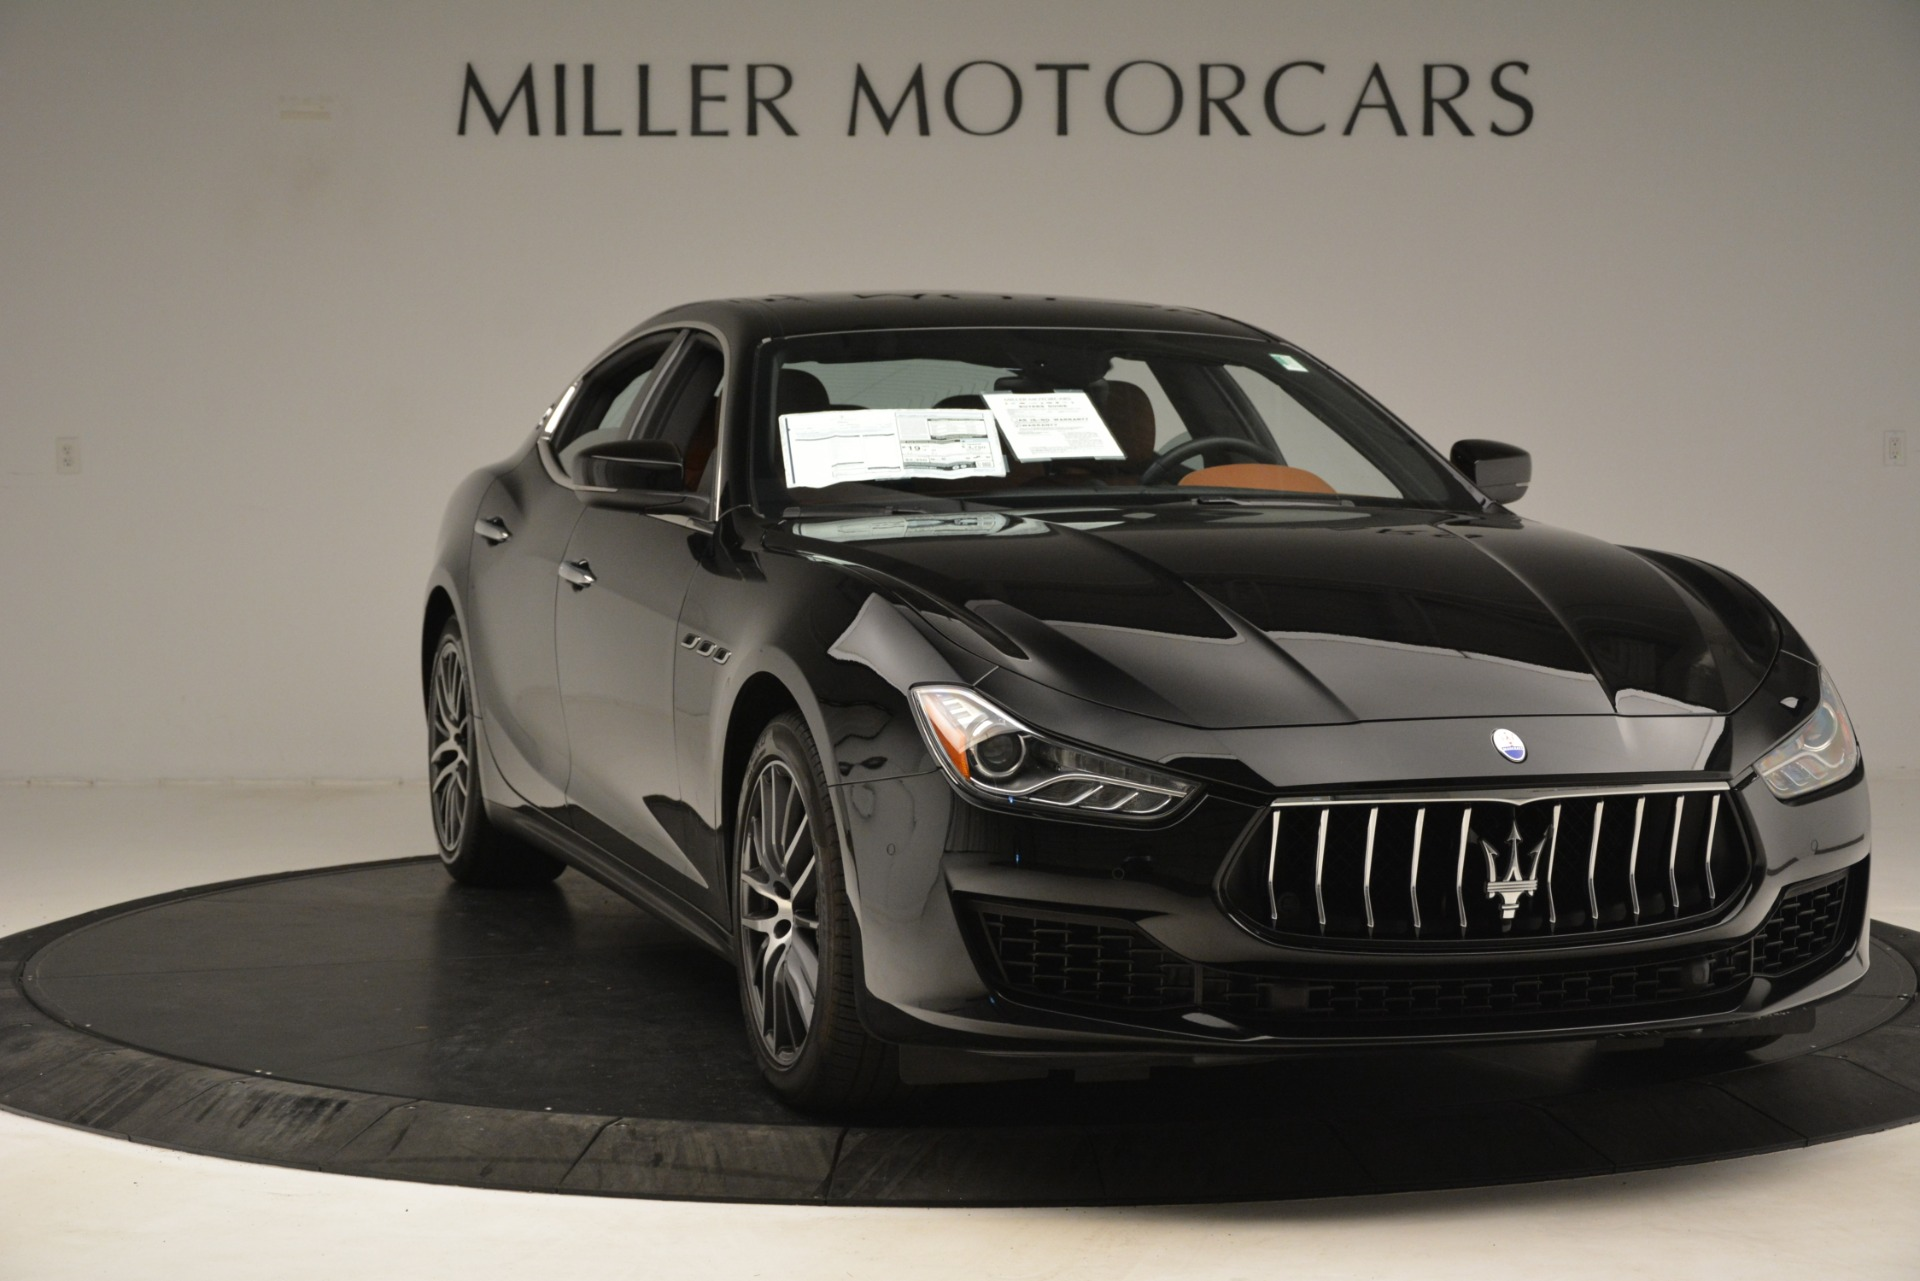 New 2019 Maserati Ghibli S Q4 For Sale In Westport, CT 2793_p11